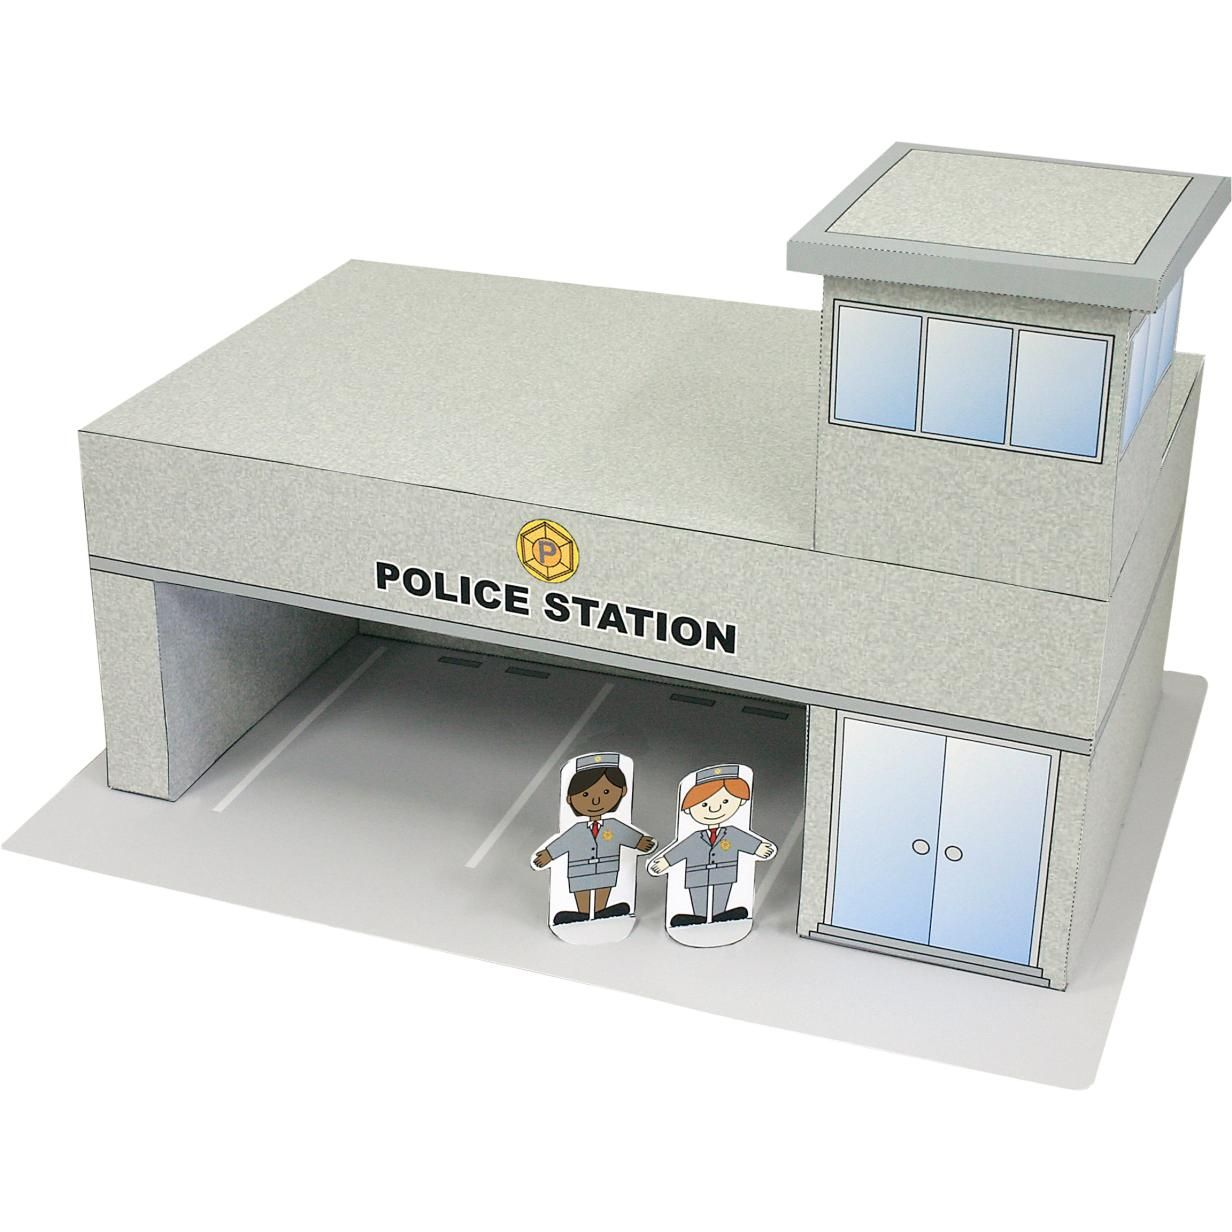 Police Station Toys Paper Craft Town Building Police Town